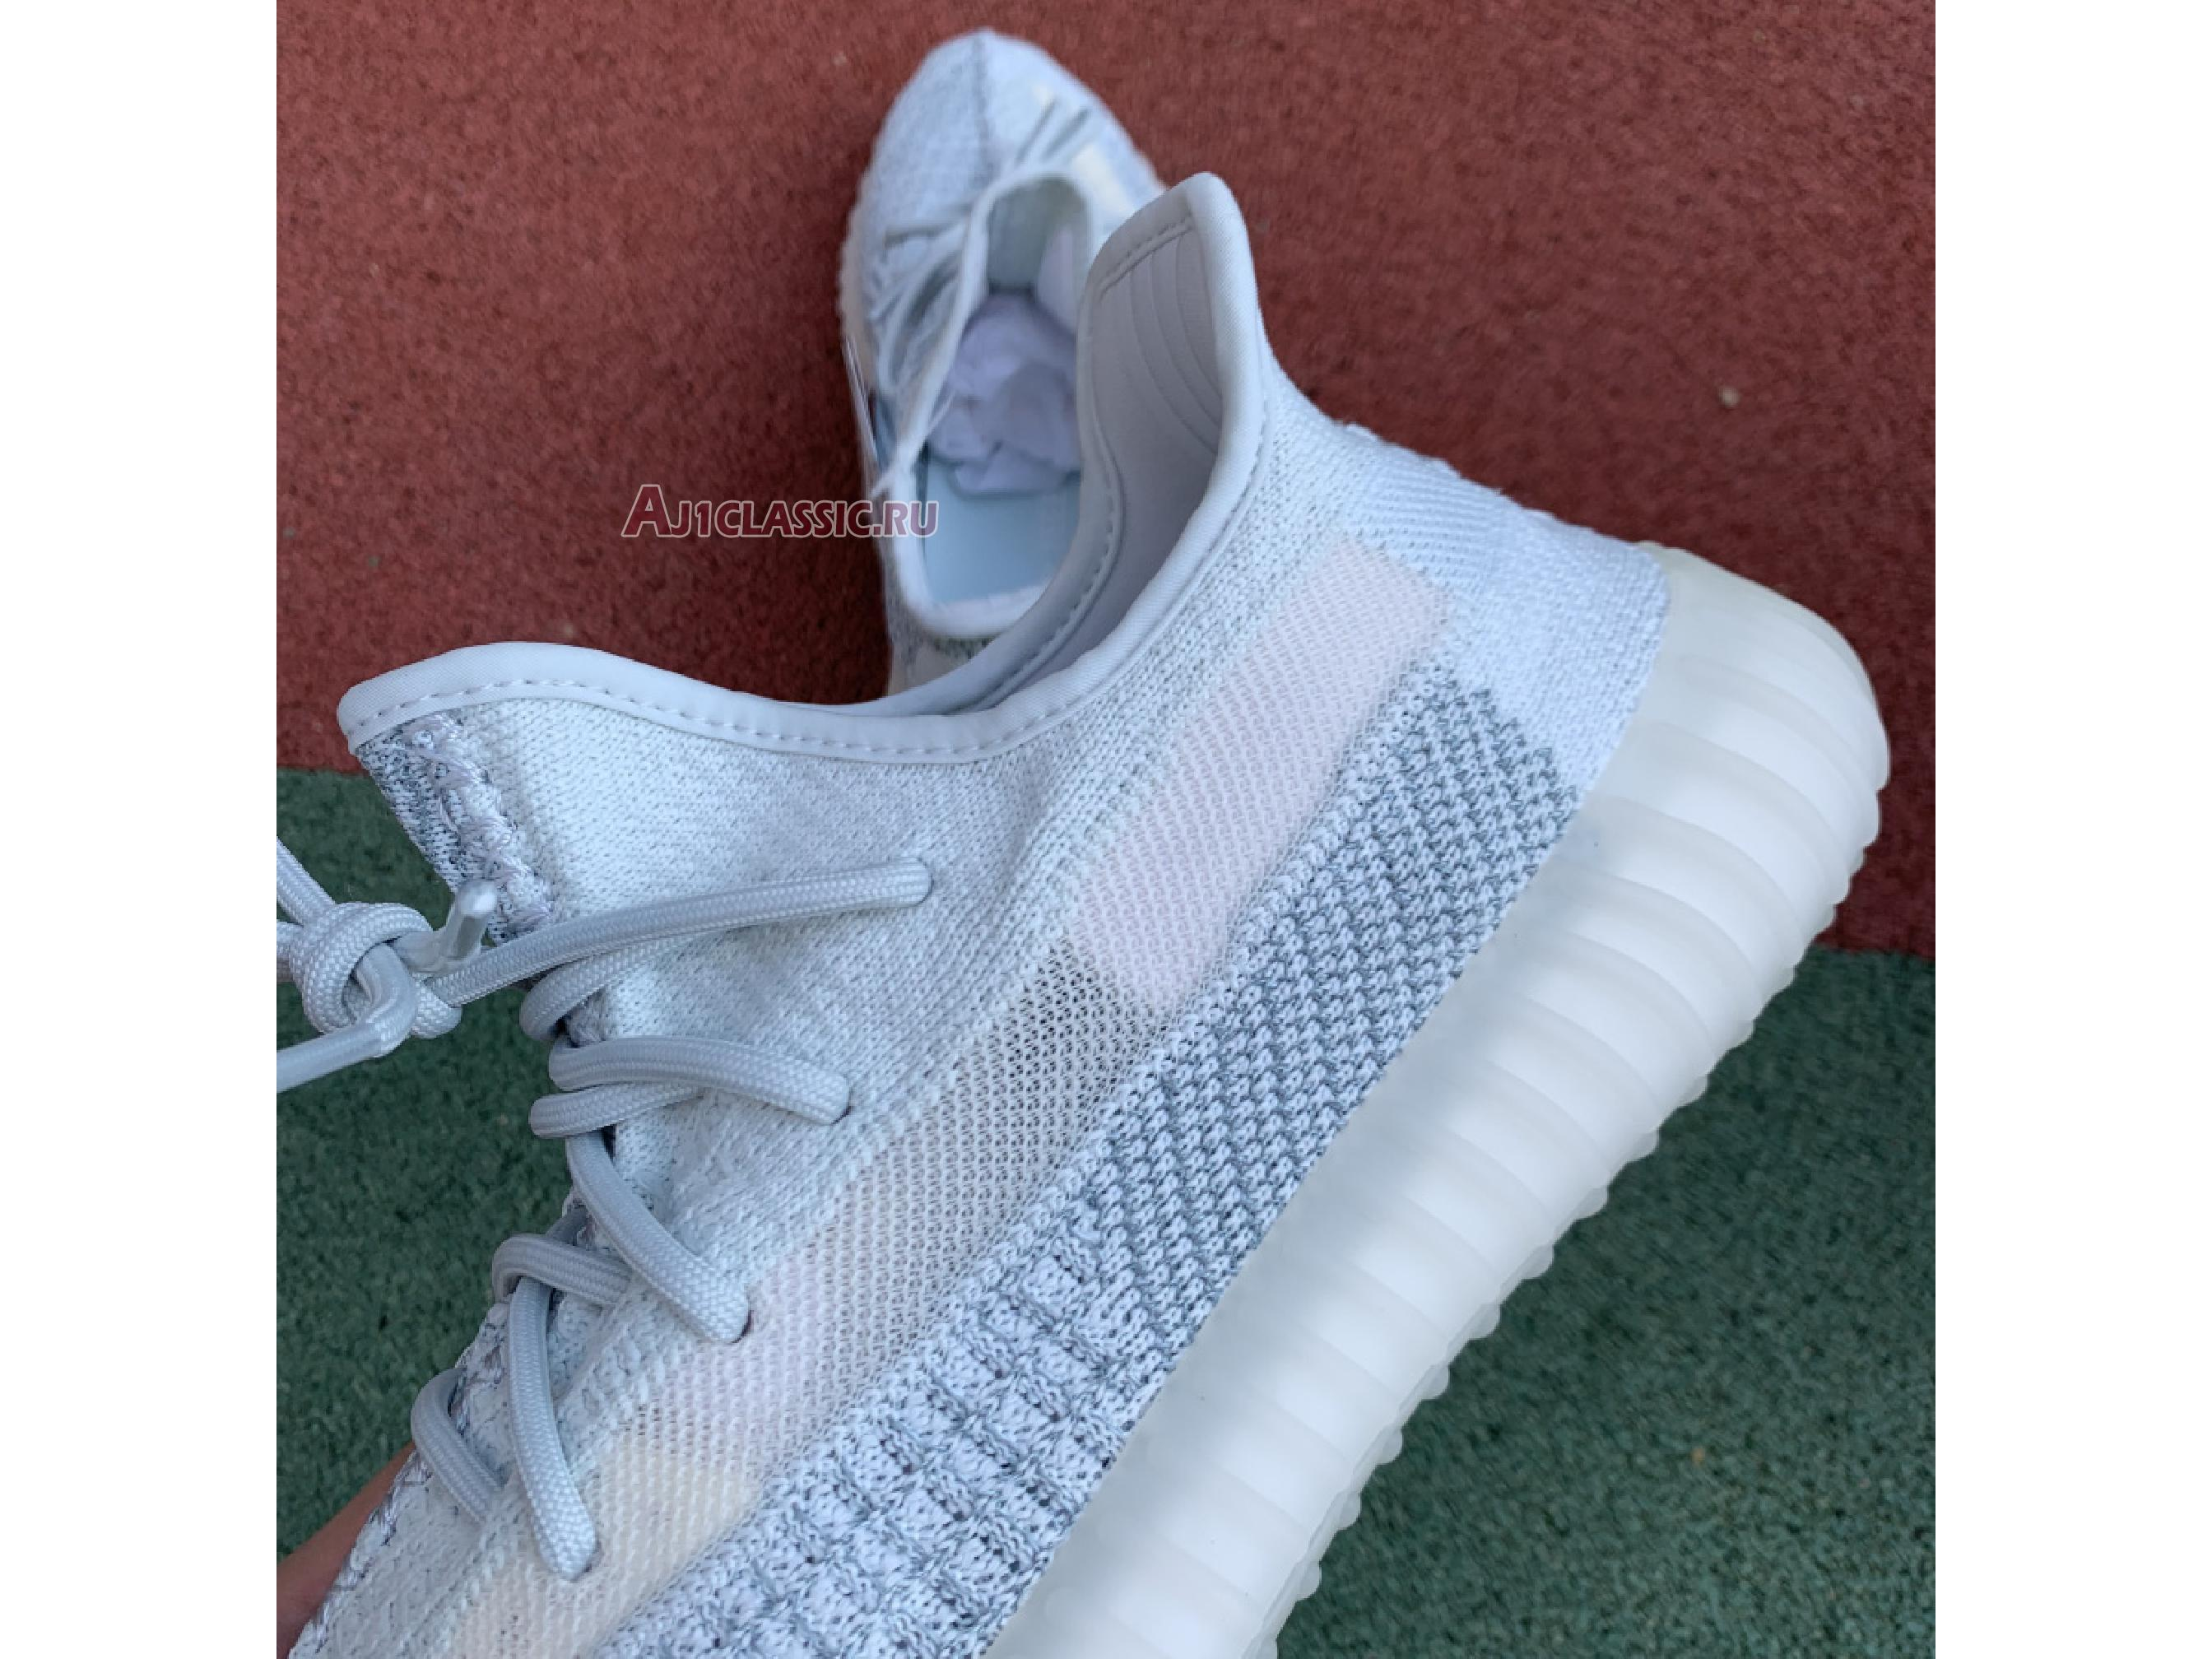 """Adidas Yeezy Boost 350 V2 """"Cloud White Reflective"""" FW5317"""